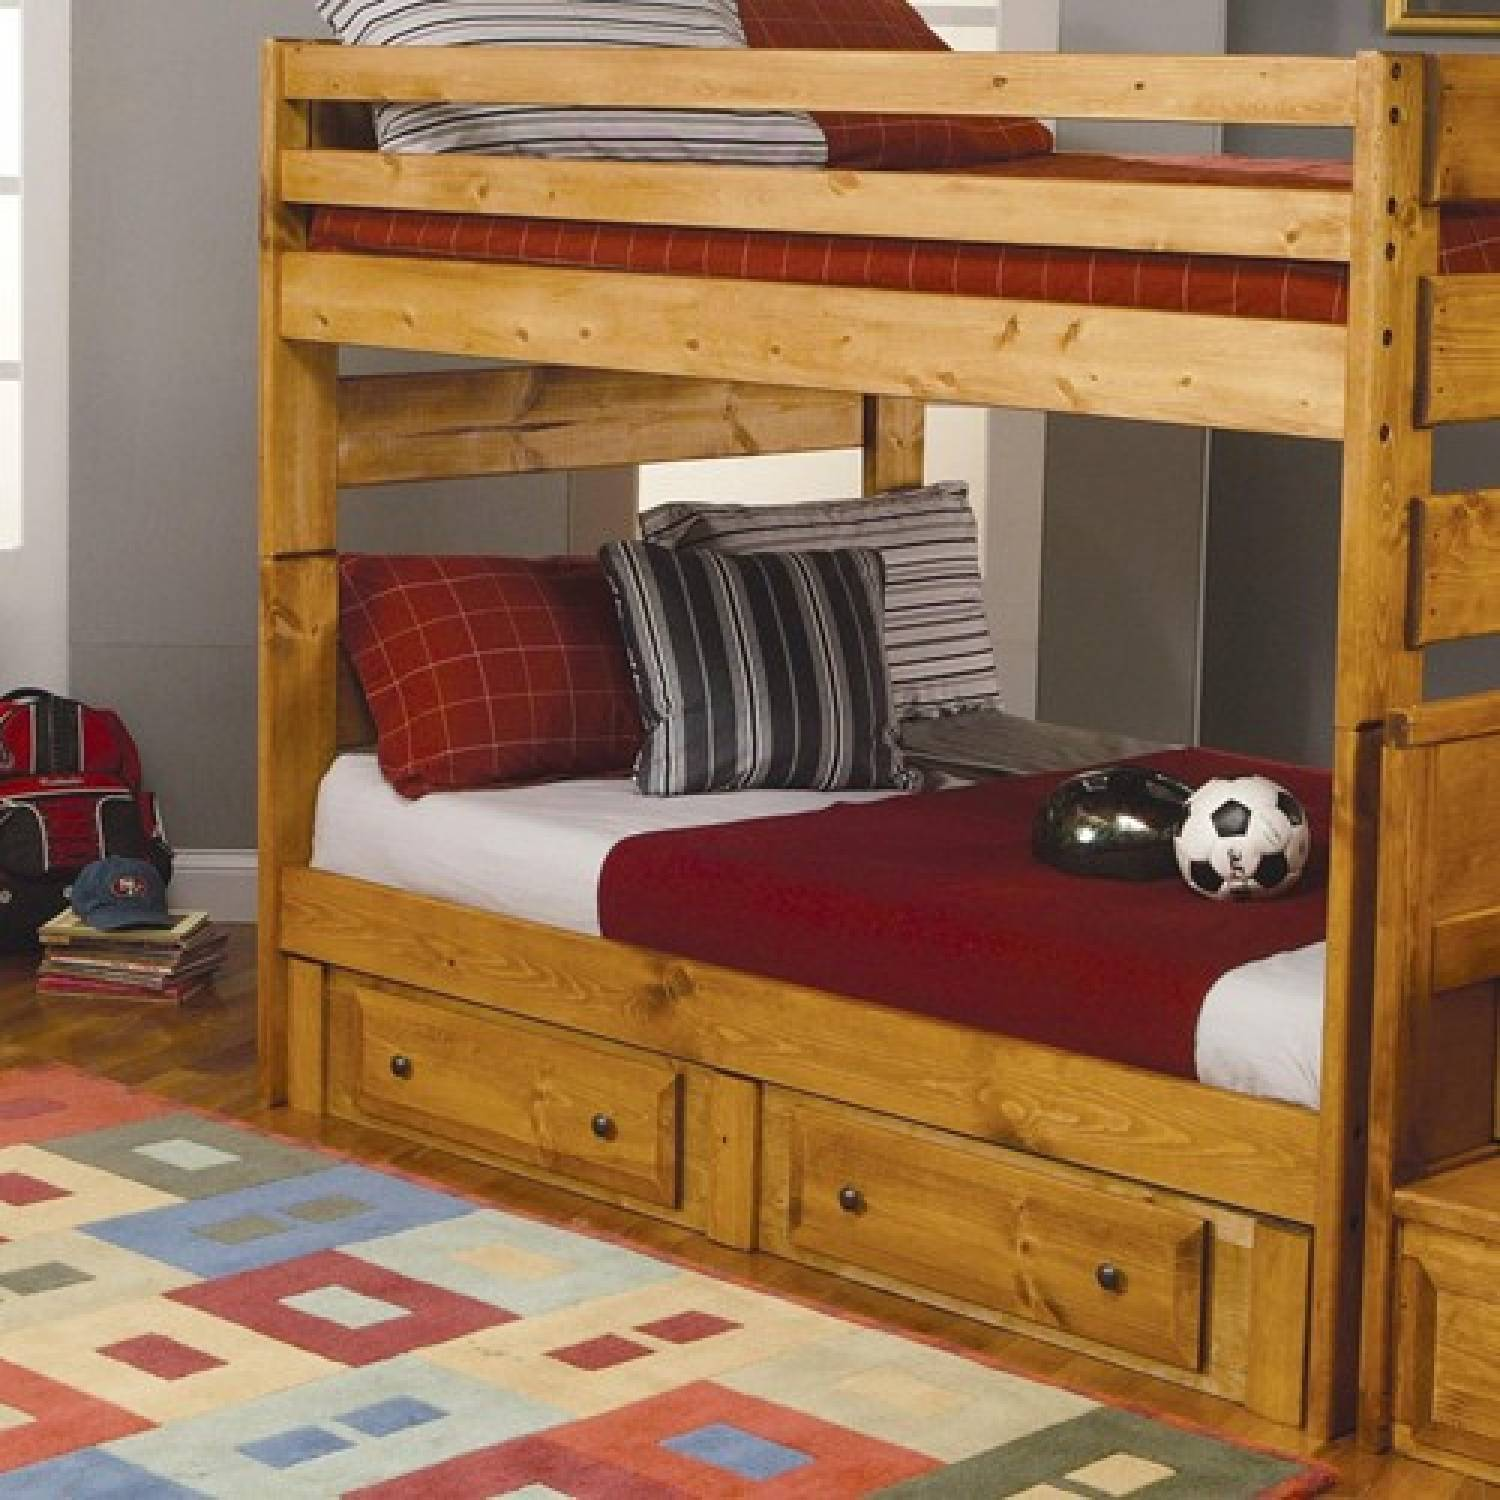 Pull Out Bed Under Bed Wrangle Hill Full Over Full Bunk Bed With Pull Out Trundle